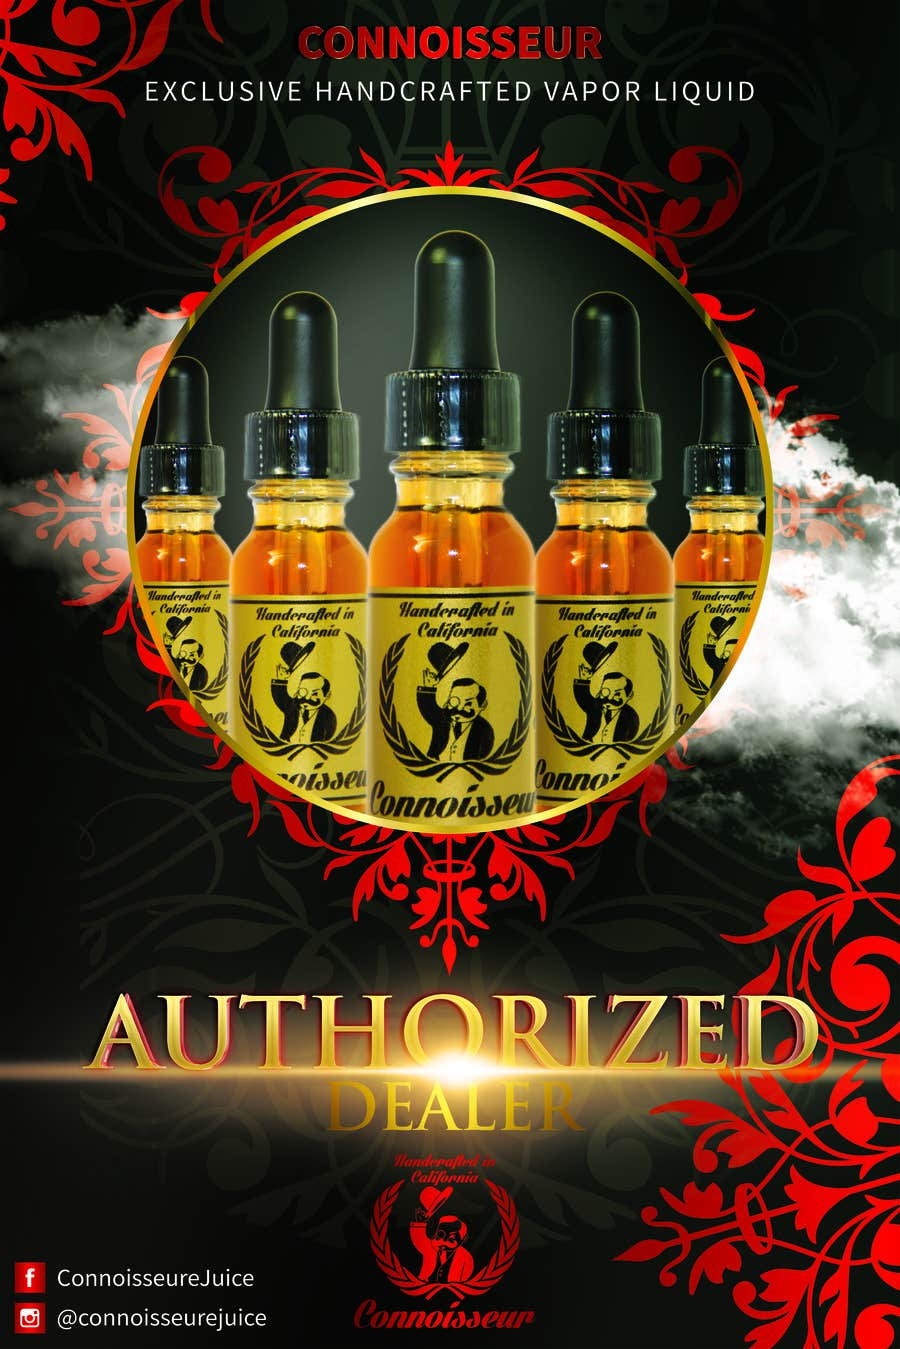 Bài tham dự cuộc thi #6 cho Poster Design for Connoisseur eJuice